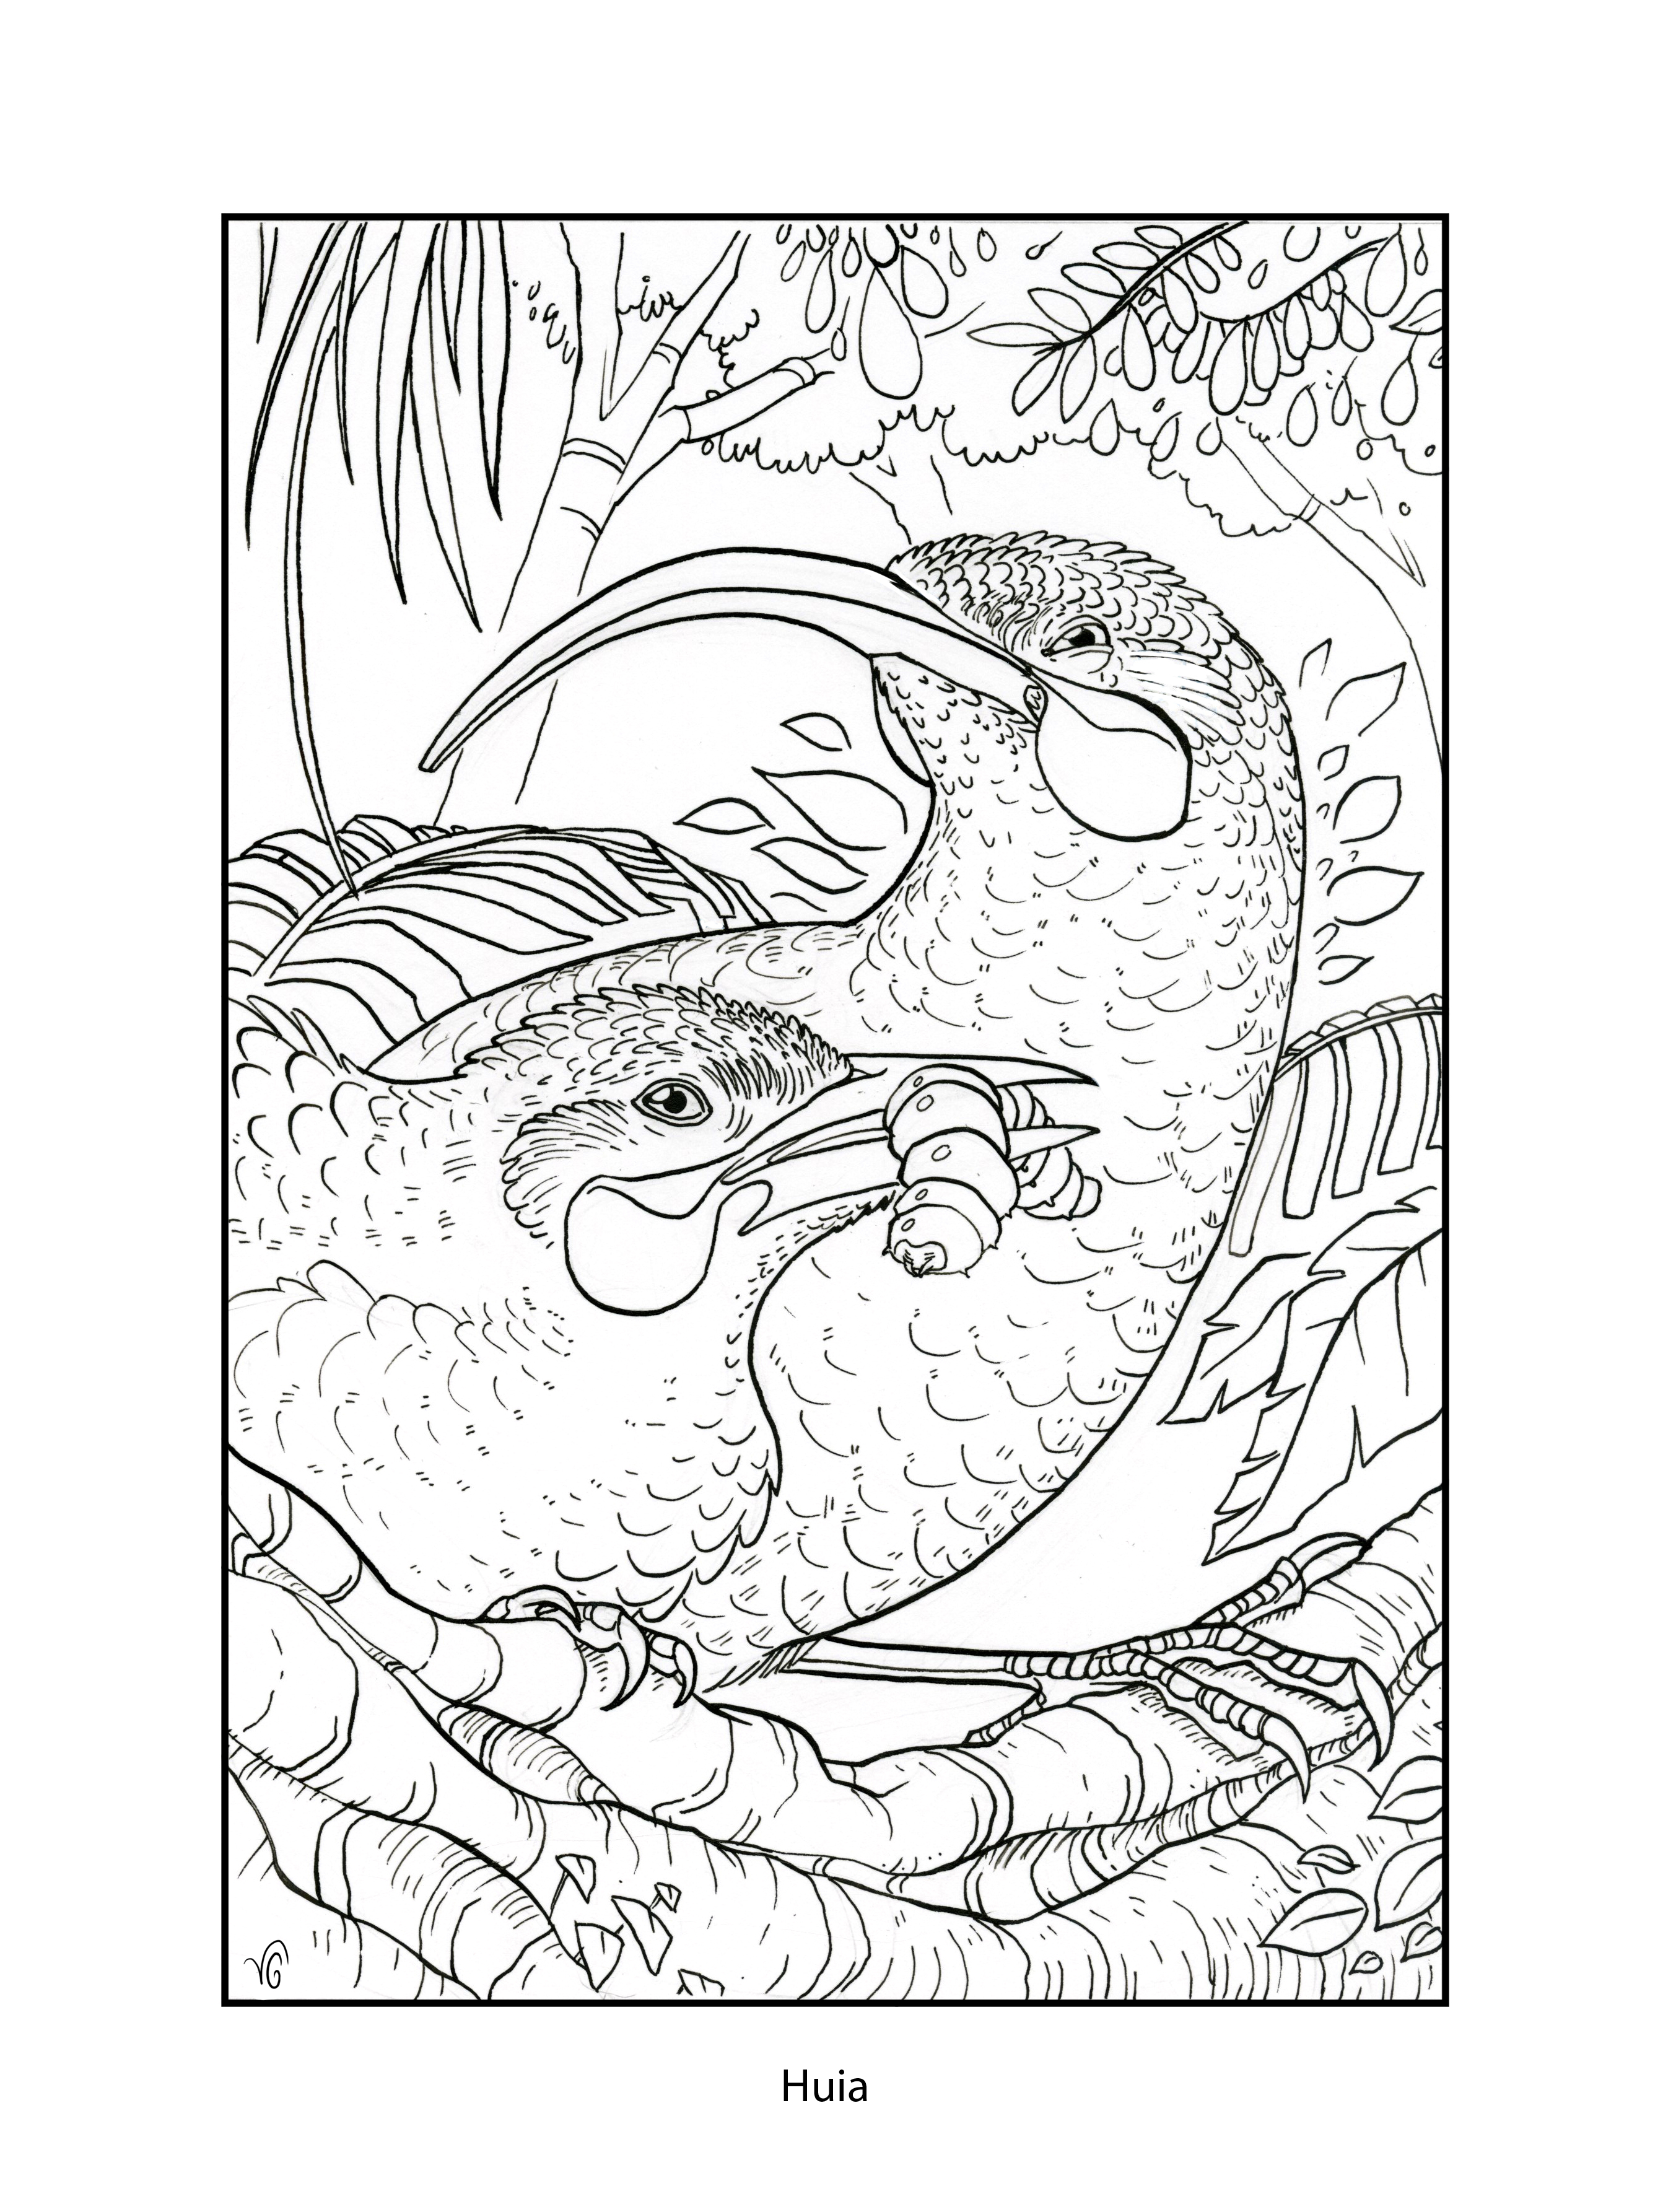 The Very Clumsy Click Beetle Coloring Pages Blast From The Past K 12 Education K 12 Education